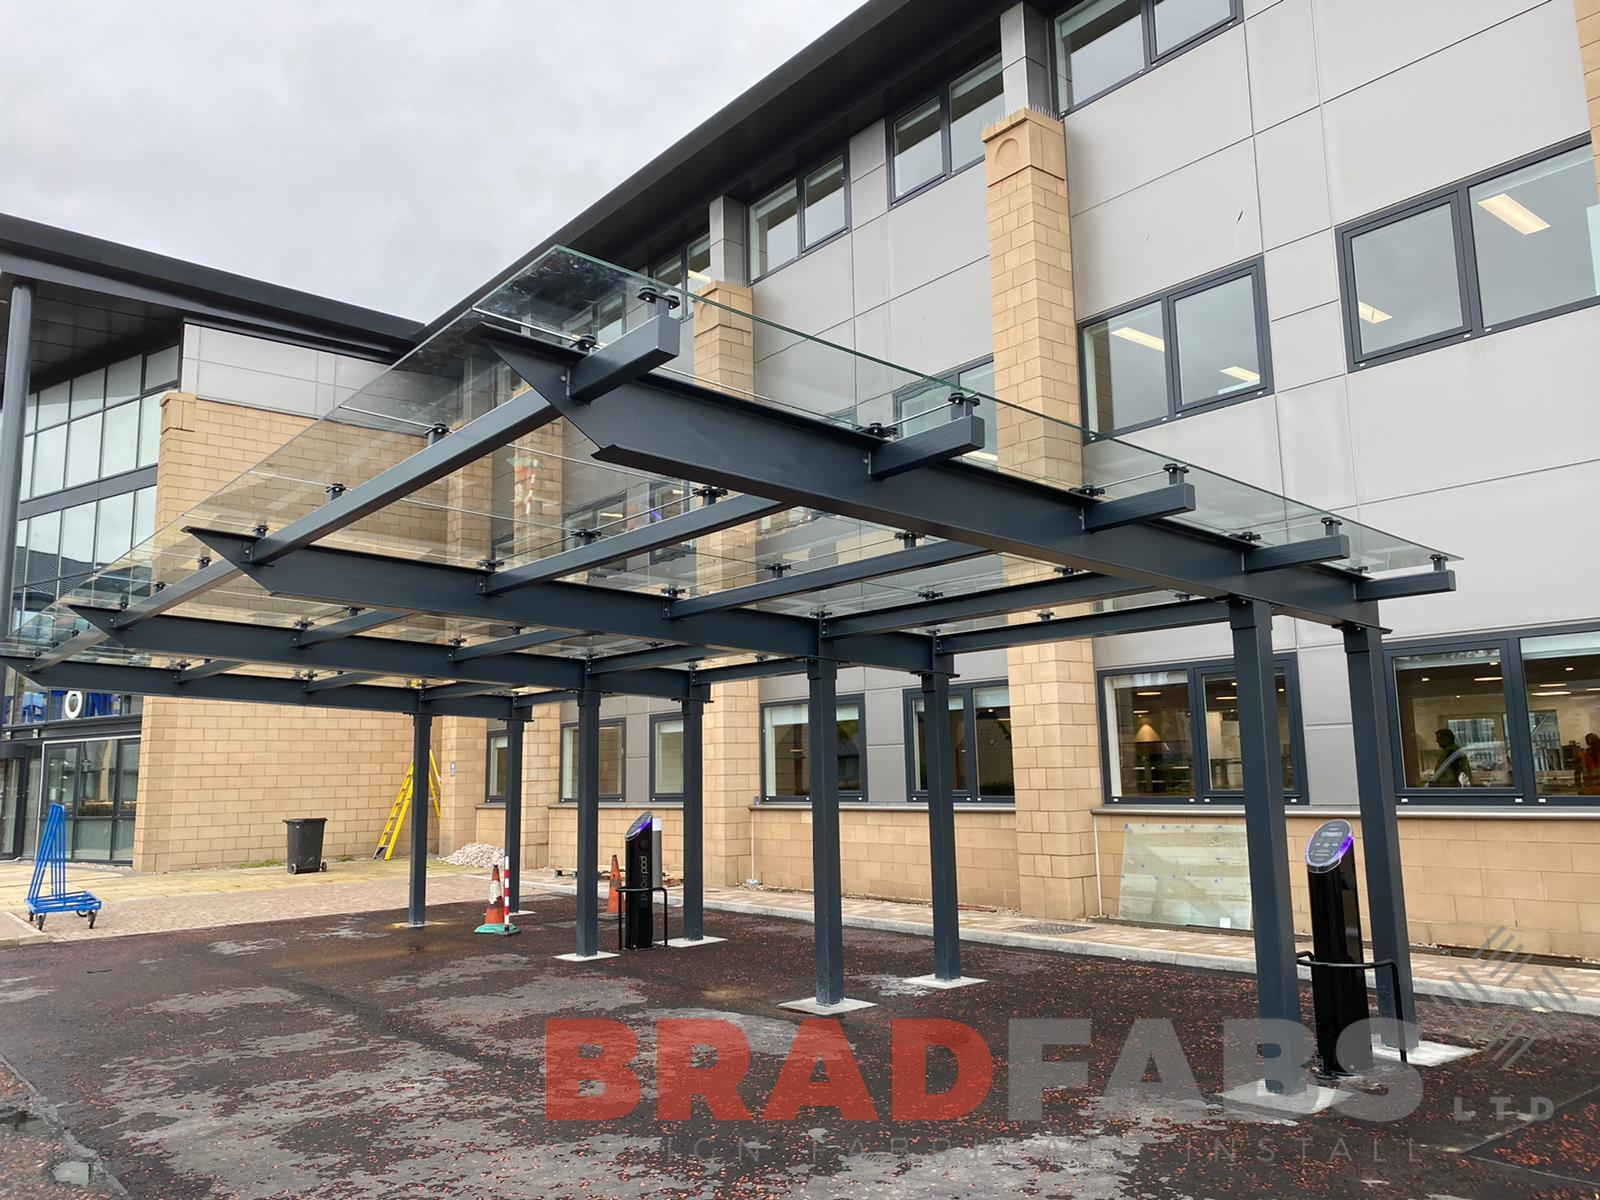 Large glass canopy for a commercial building by Bradfabs Ltd